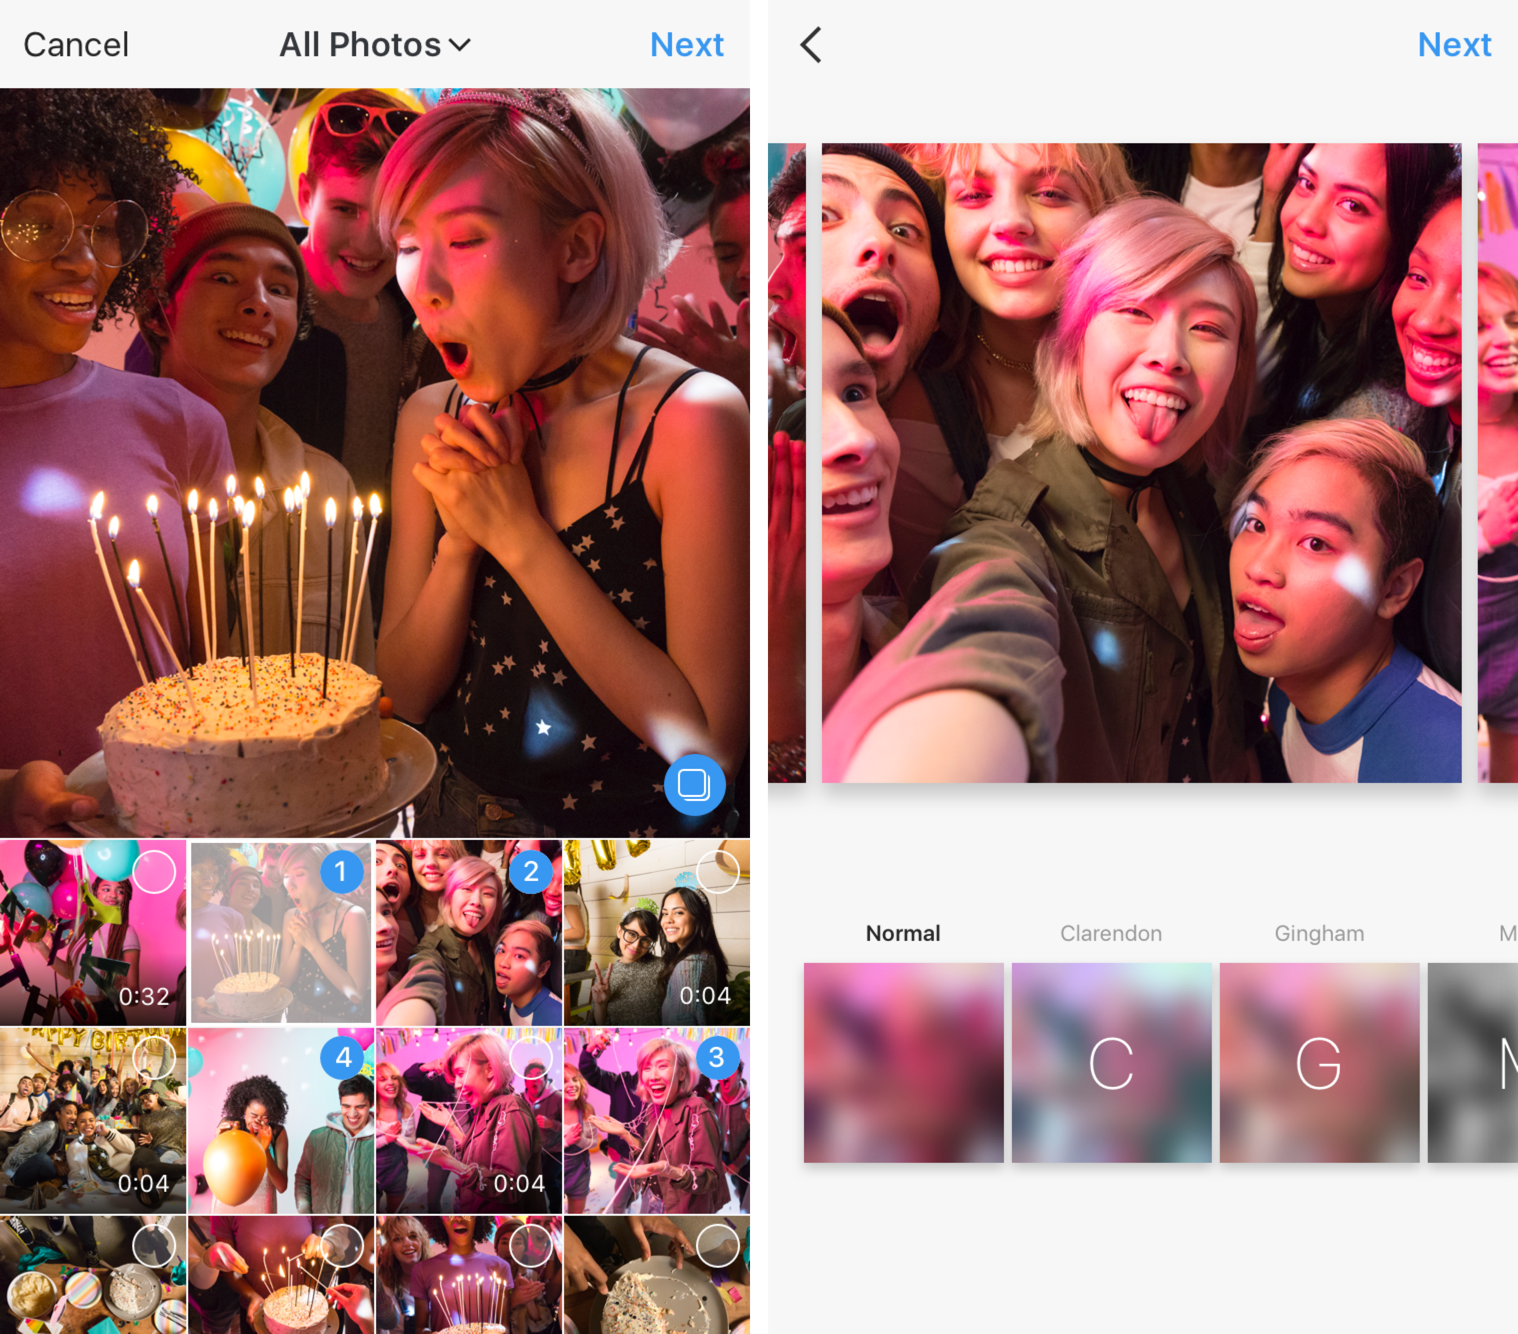 Instagram will now let you upload 10 photos at once